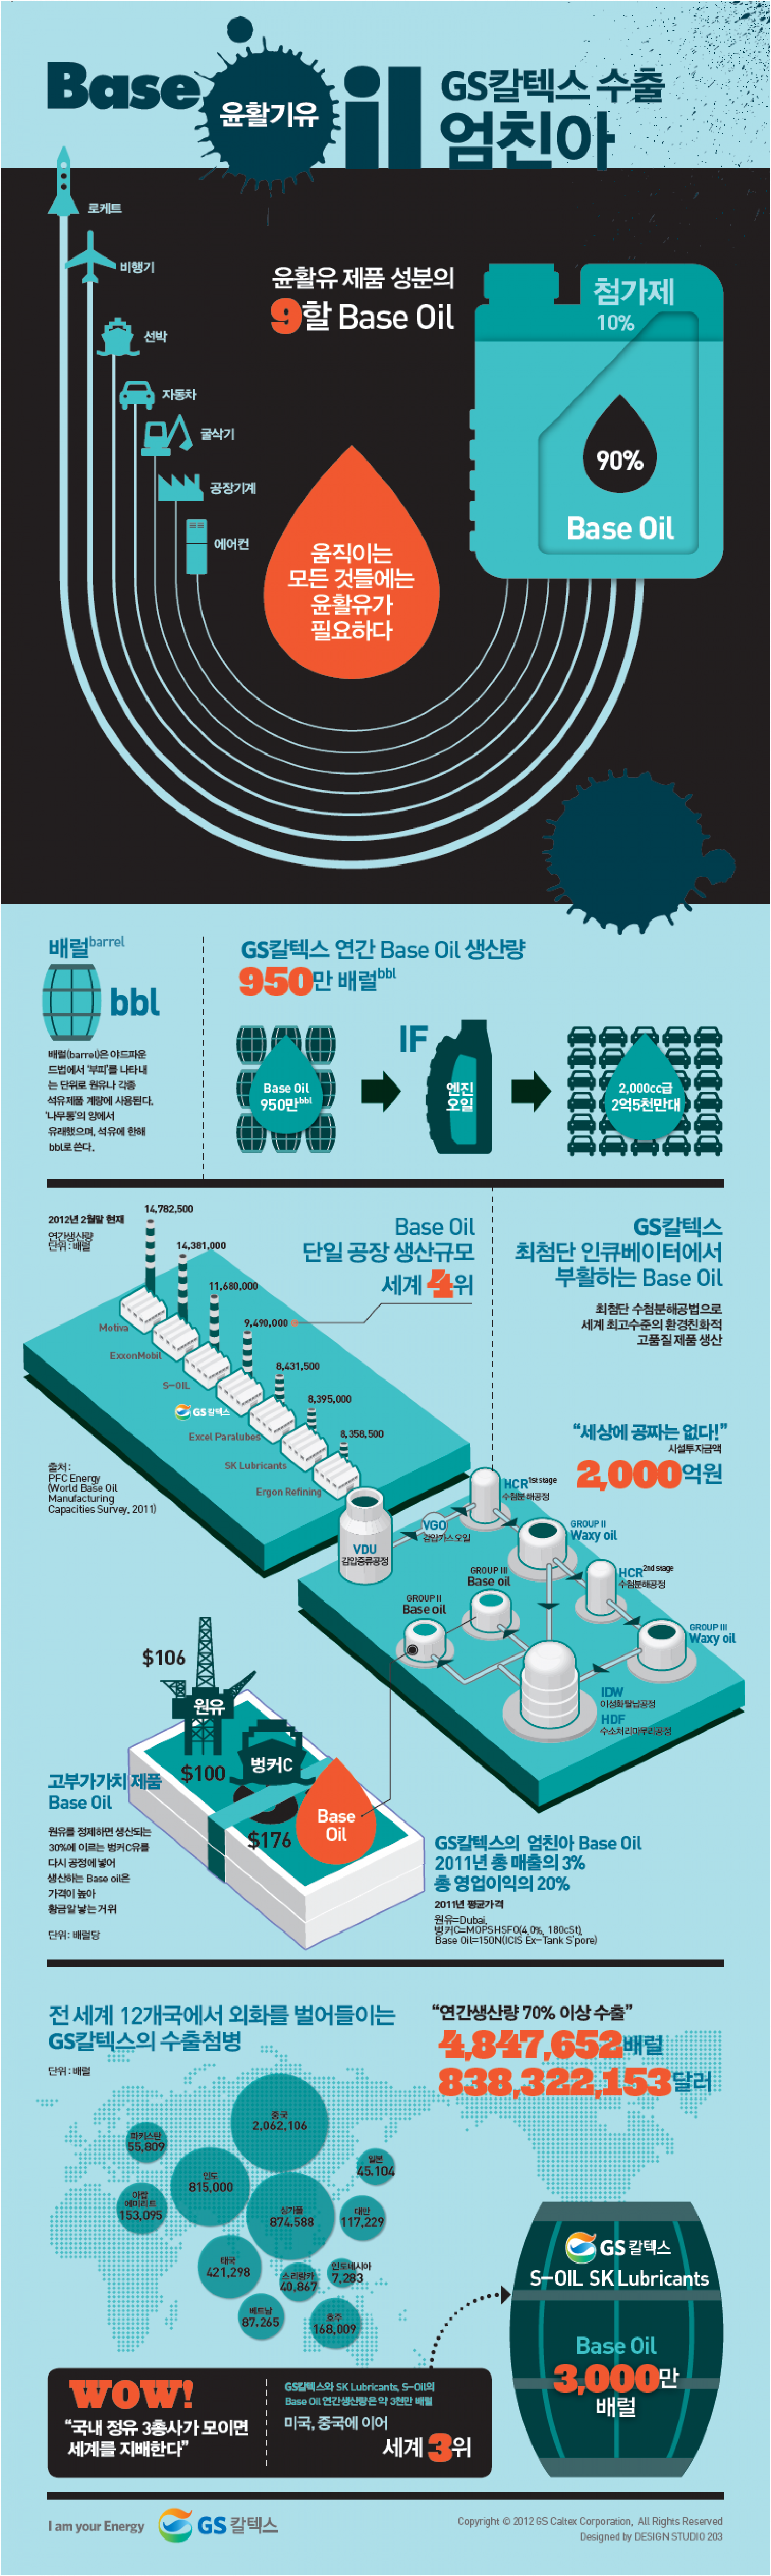 Base Oil Business of GS Caltex Infographic